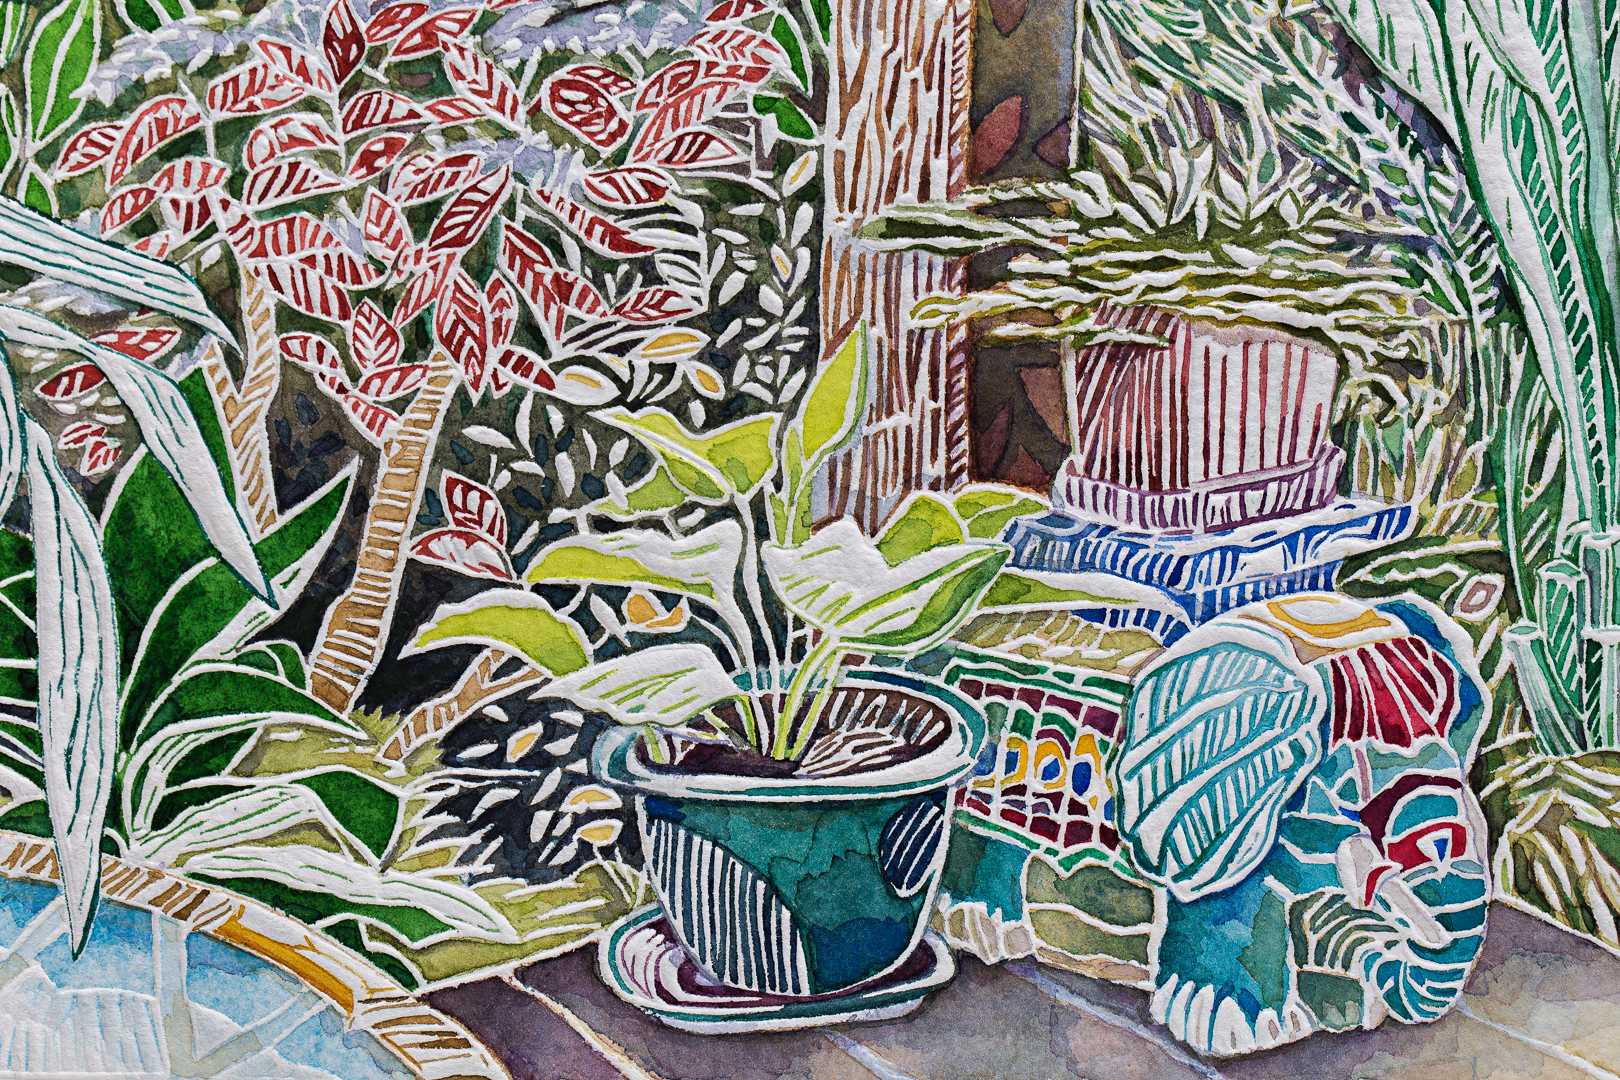 'From the Verandah - Rosebank' 2017